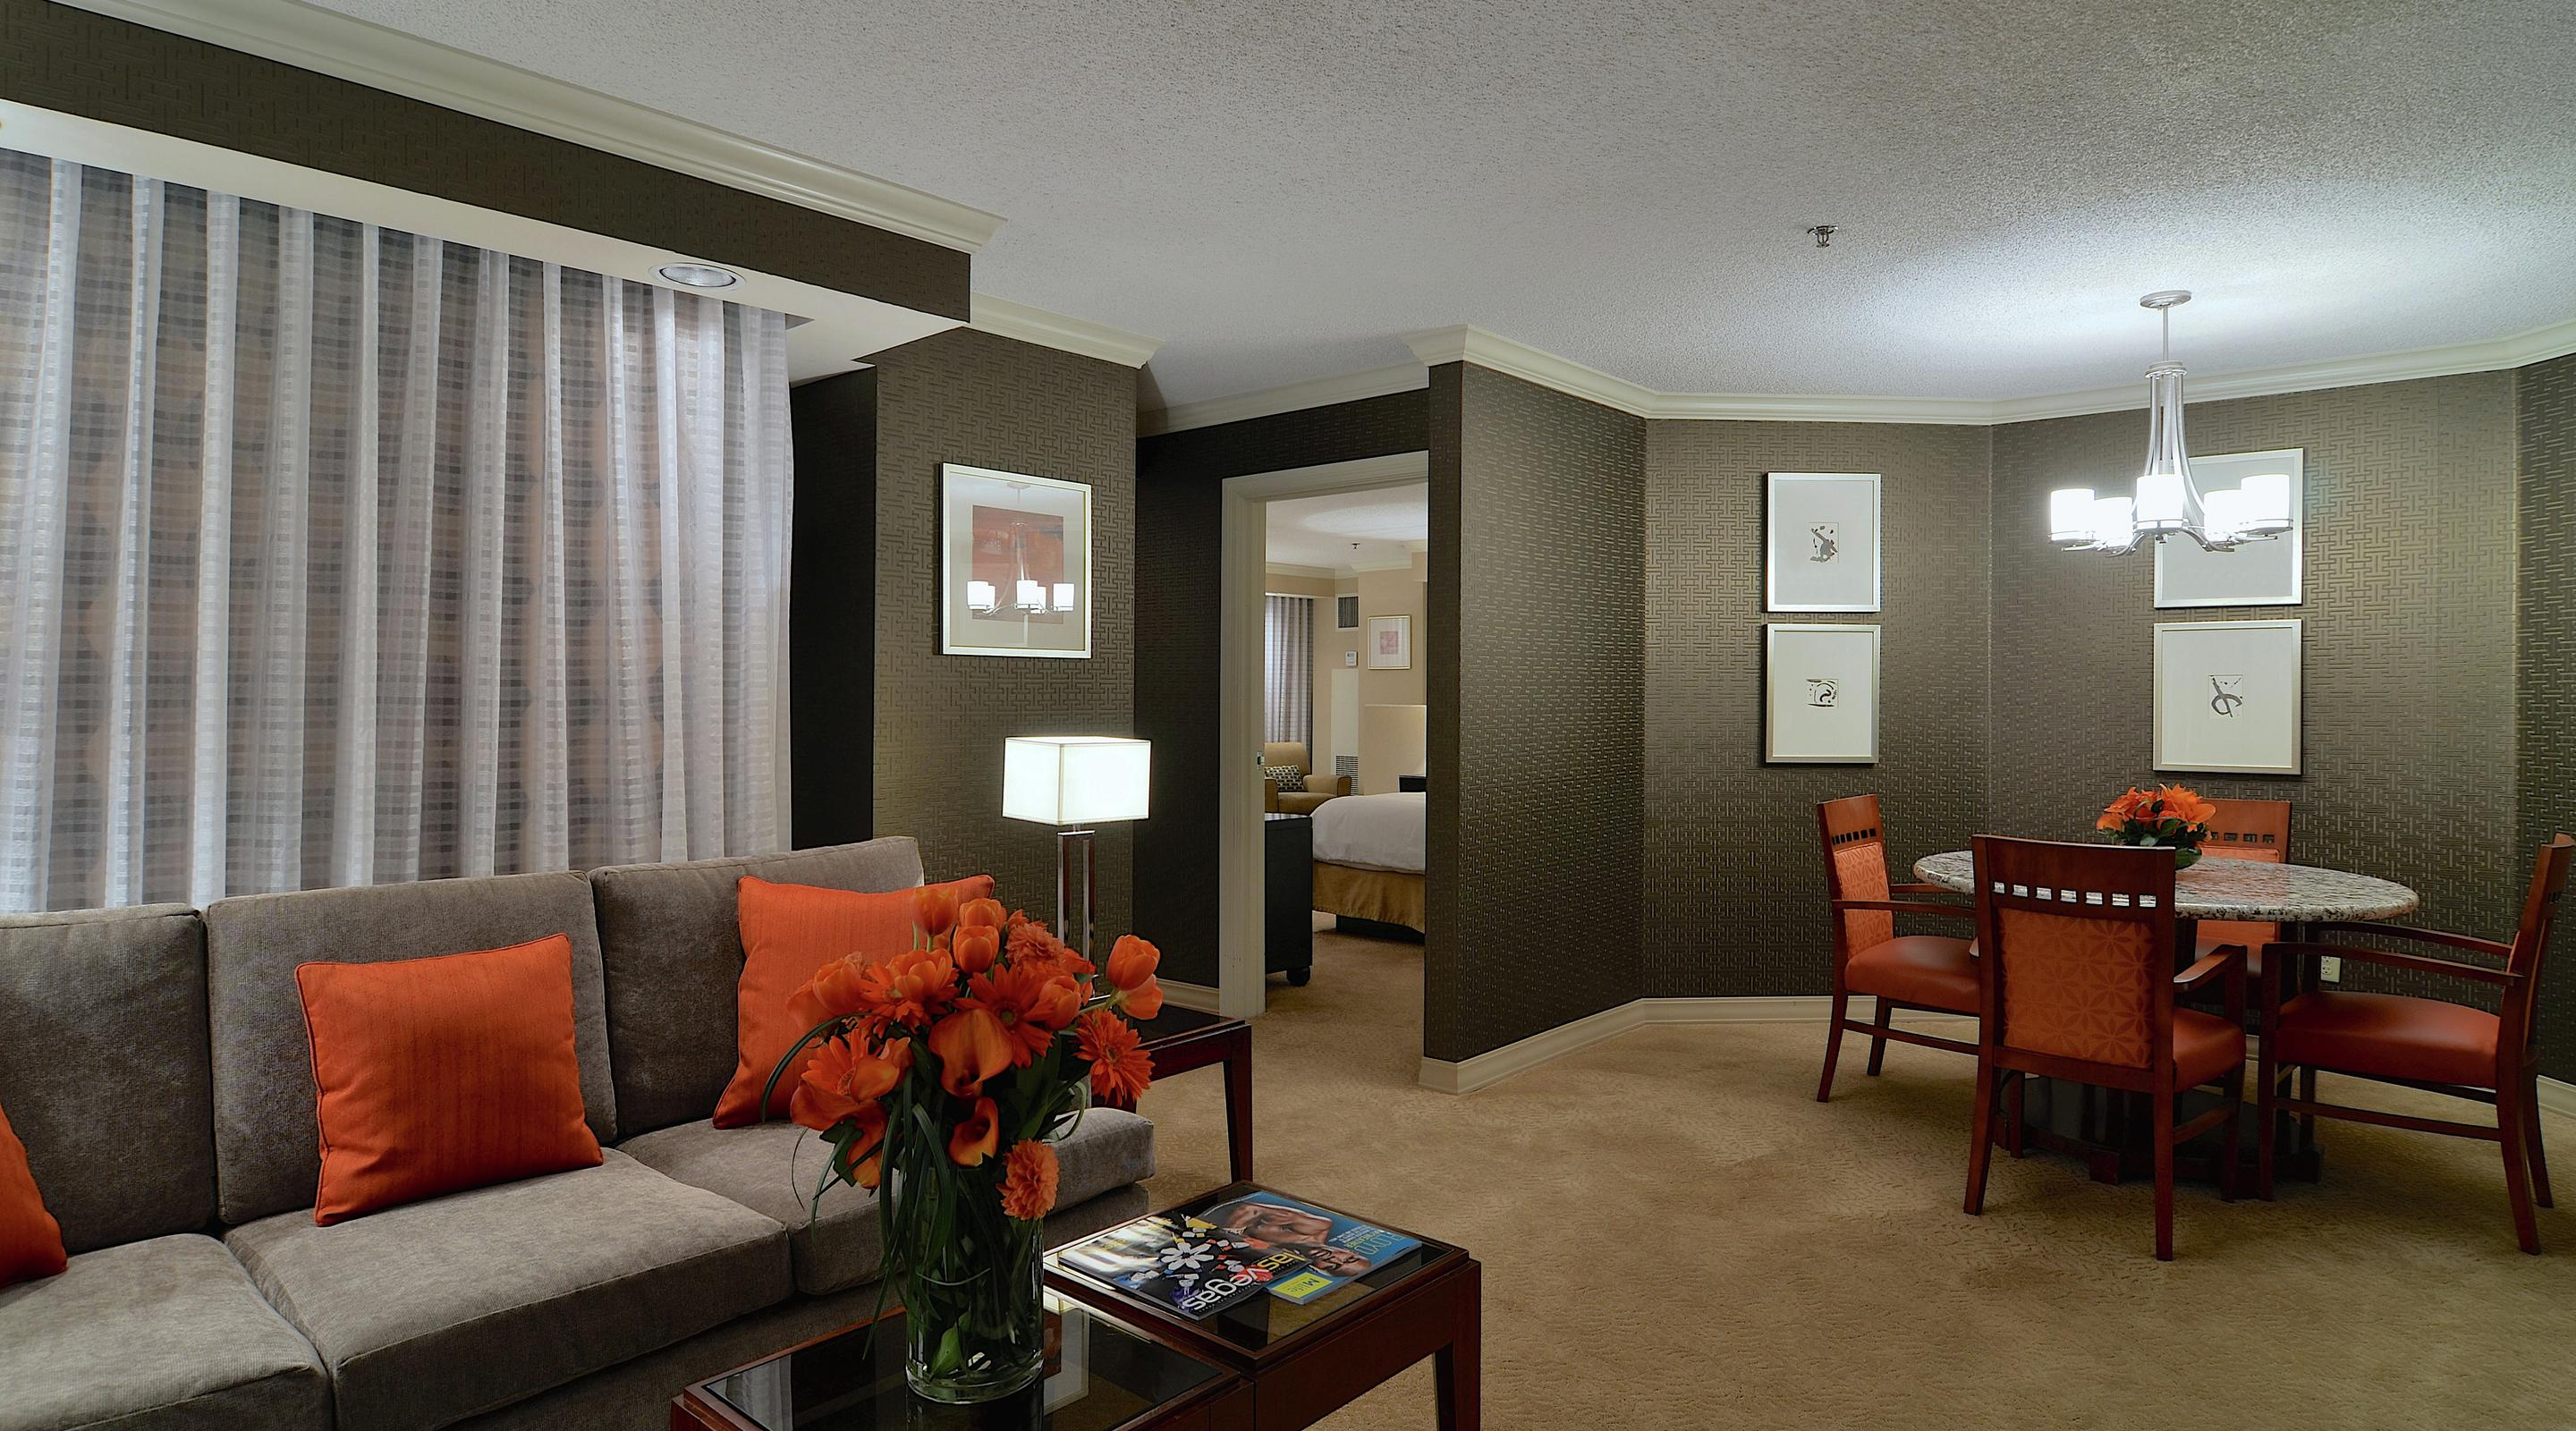 One of New York-New York's newest remodeled rooms featuring elite and modern amenities starting from $205.